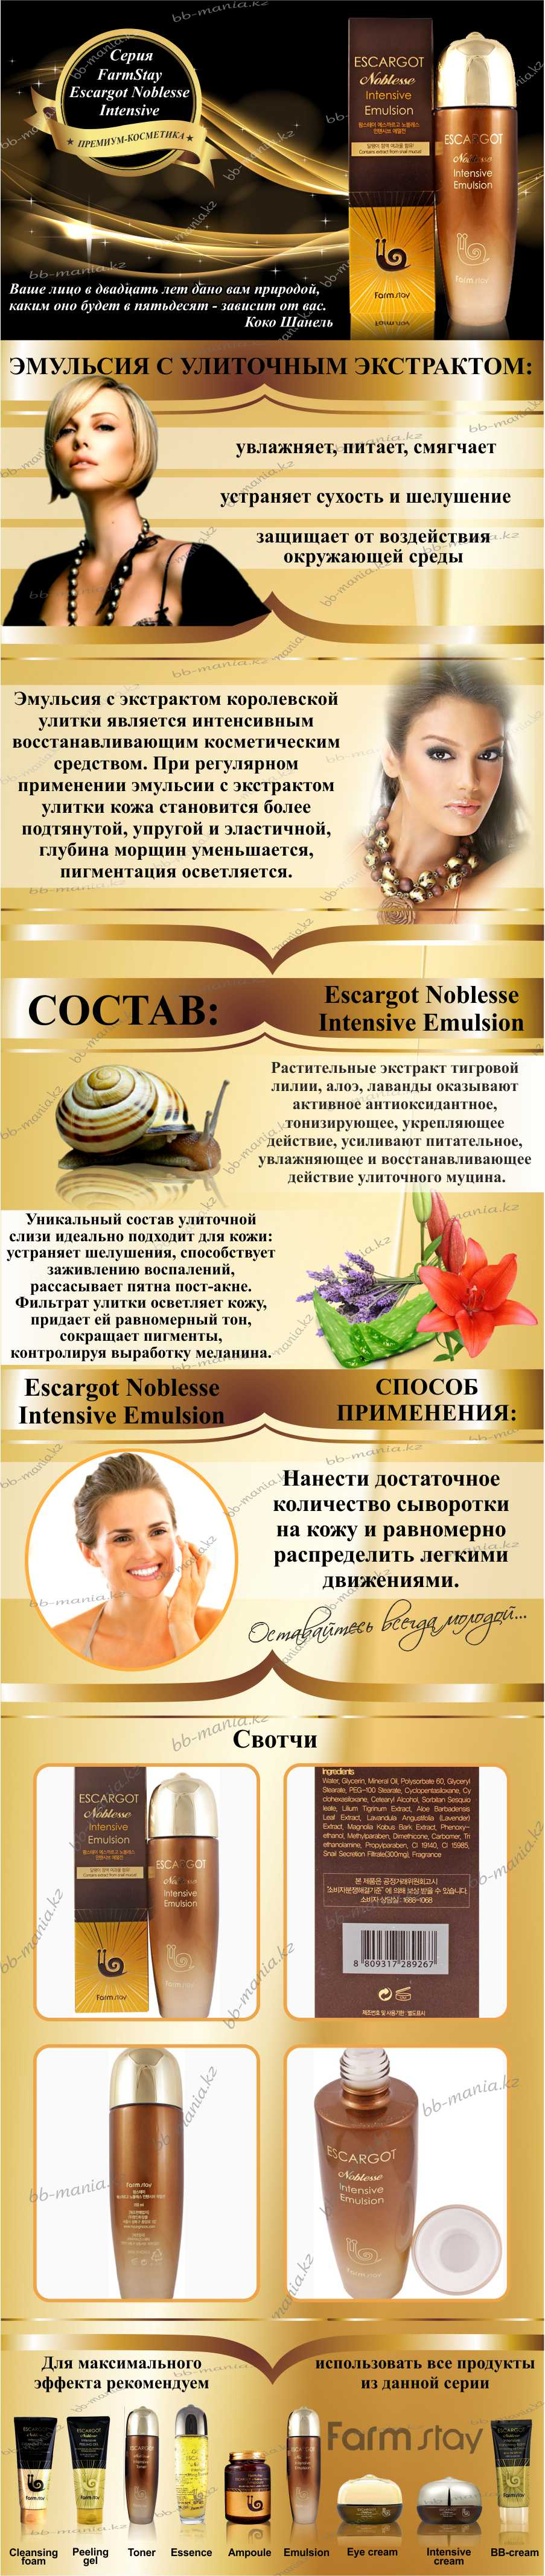 Escargot Noblesse Intensive Emulsion [FarmStay] (1)-min